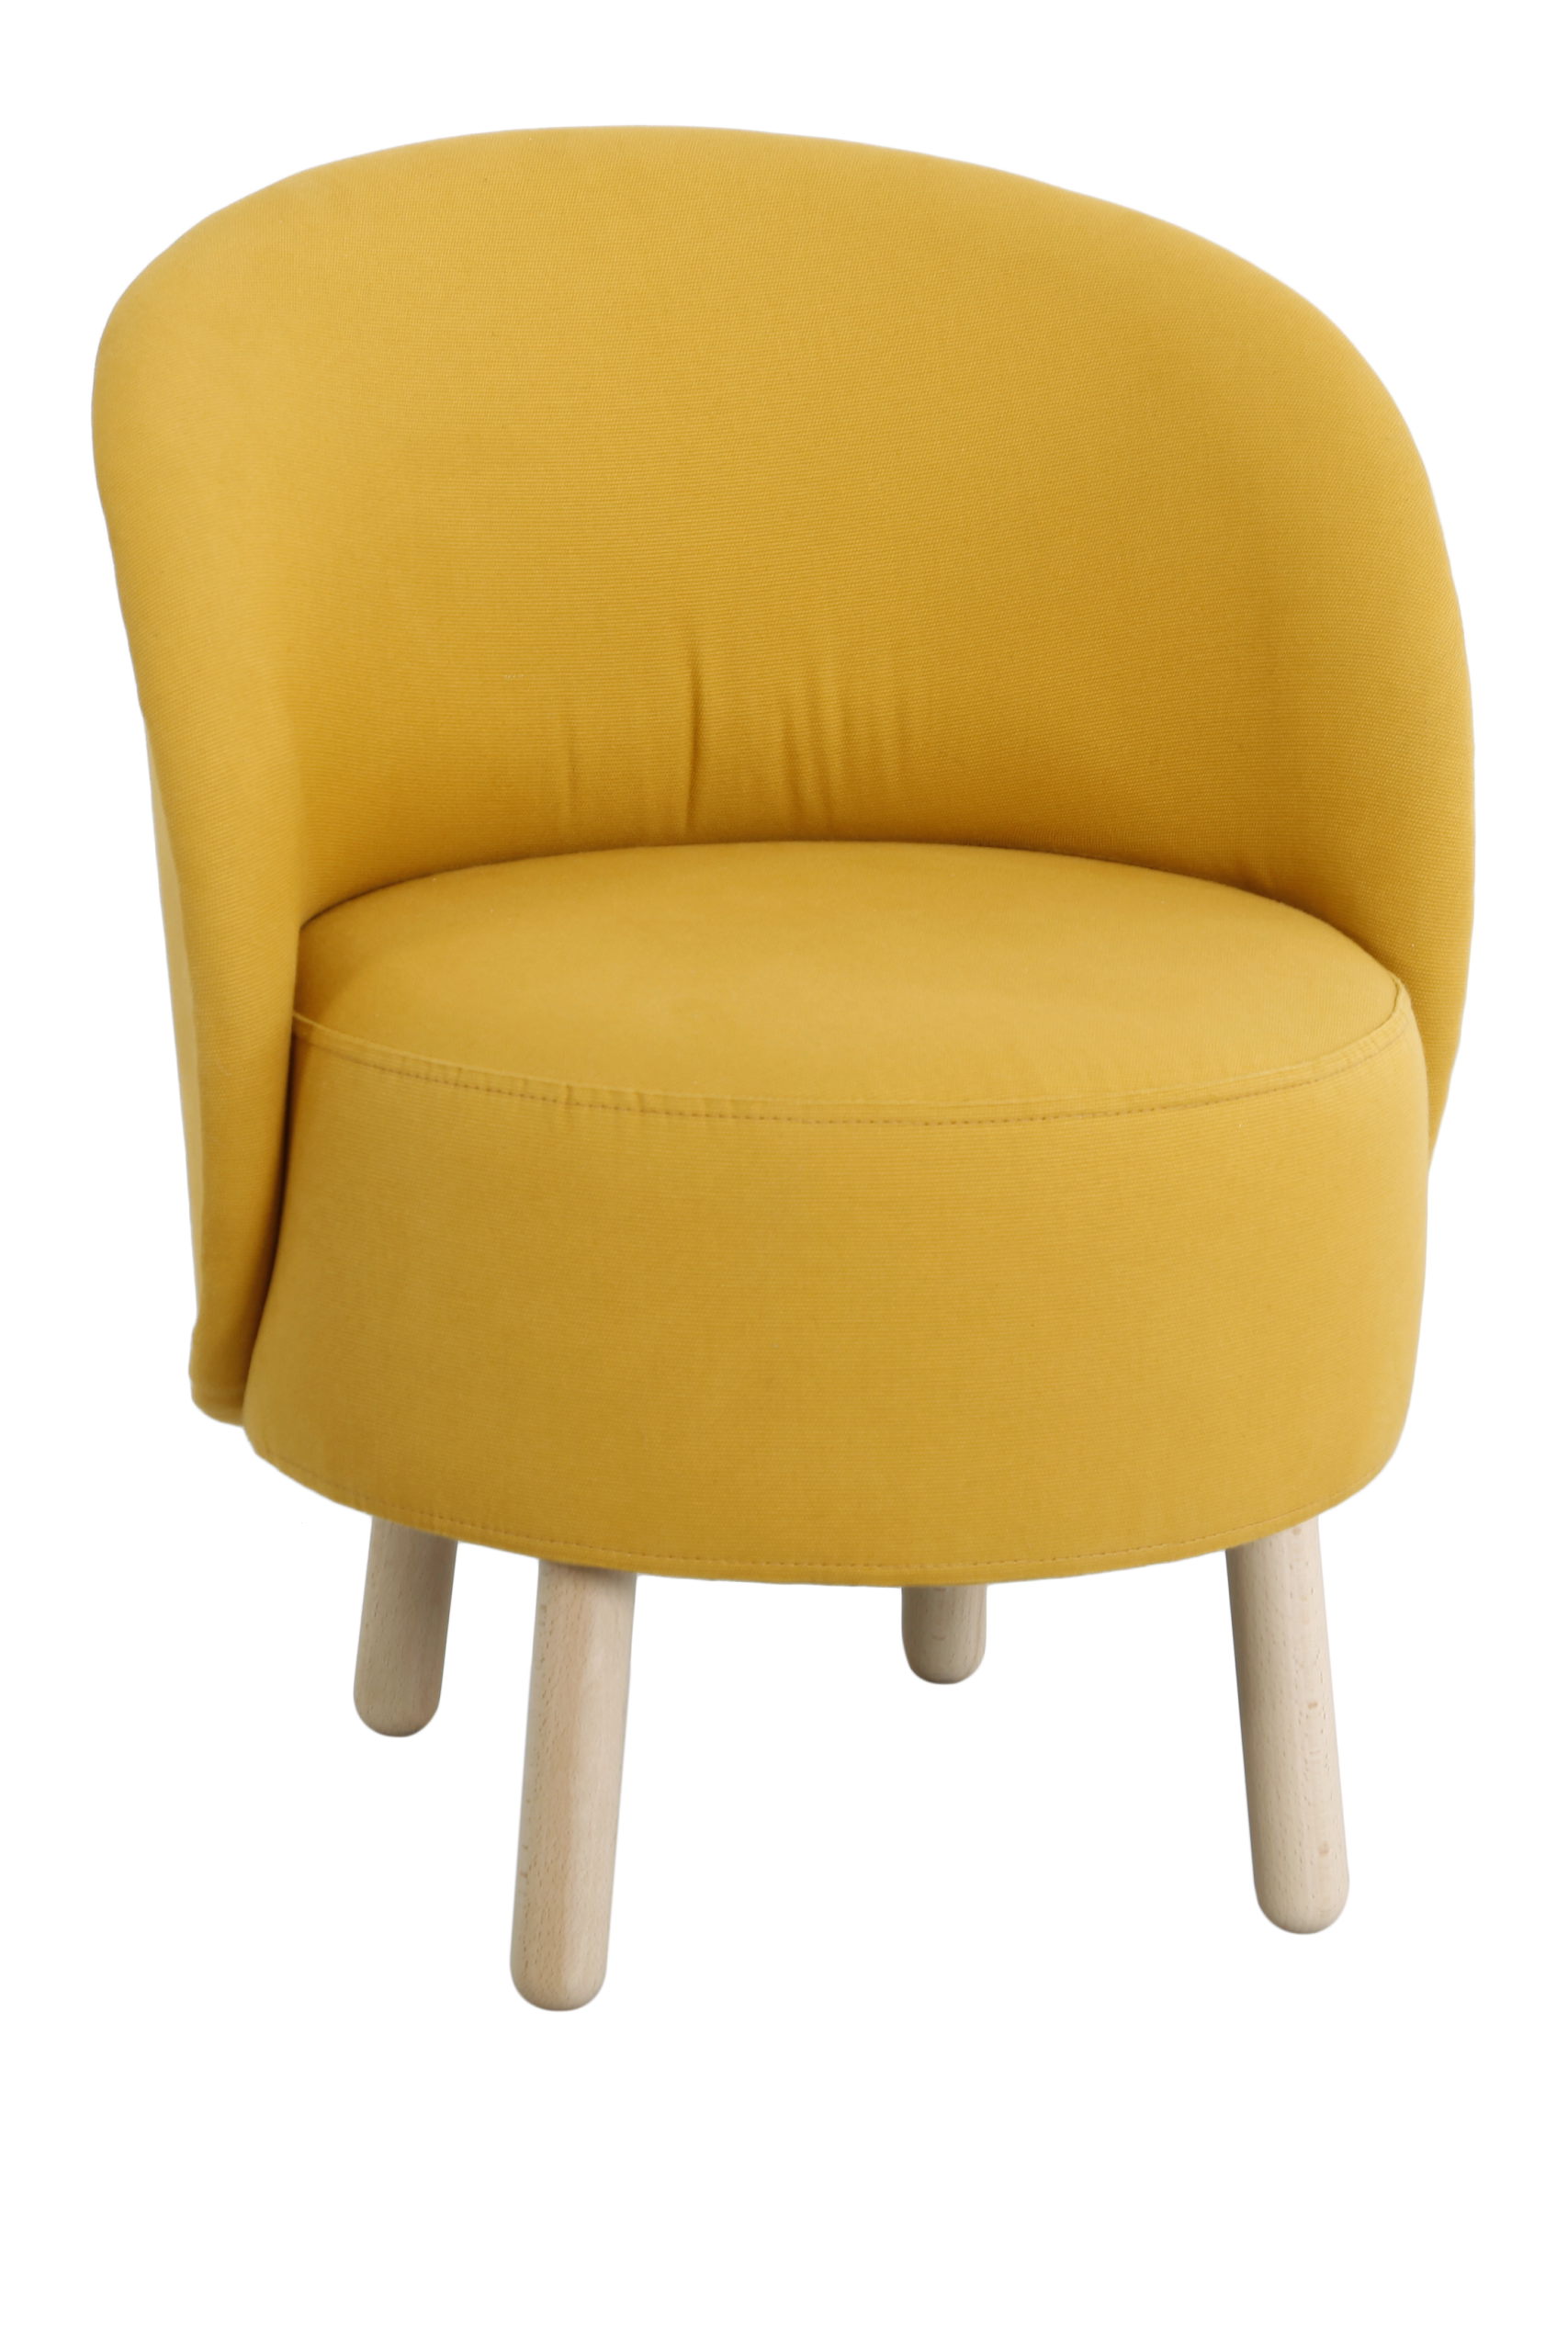 habitat bold fauteuils fauteuil jaune moutarde tissu. Black Bedroom Furniture Sets. Home Design Ideas